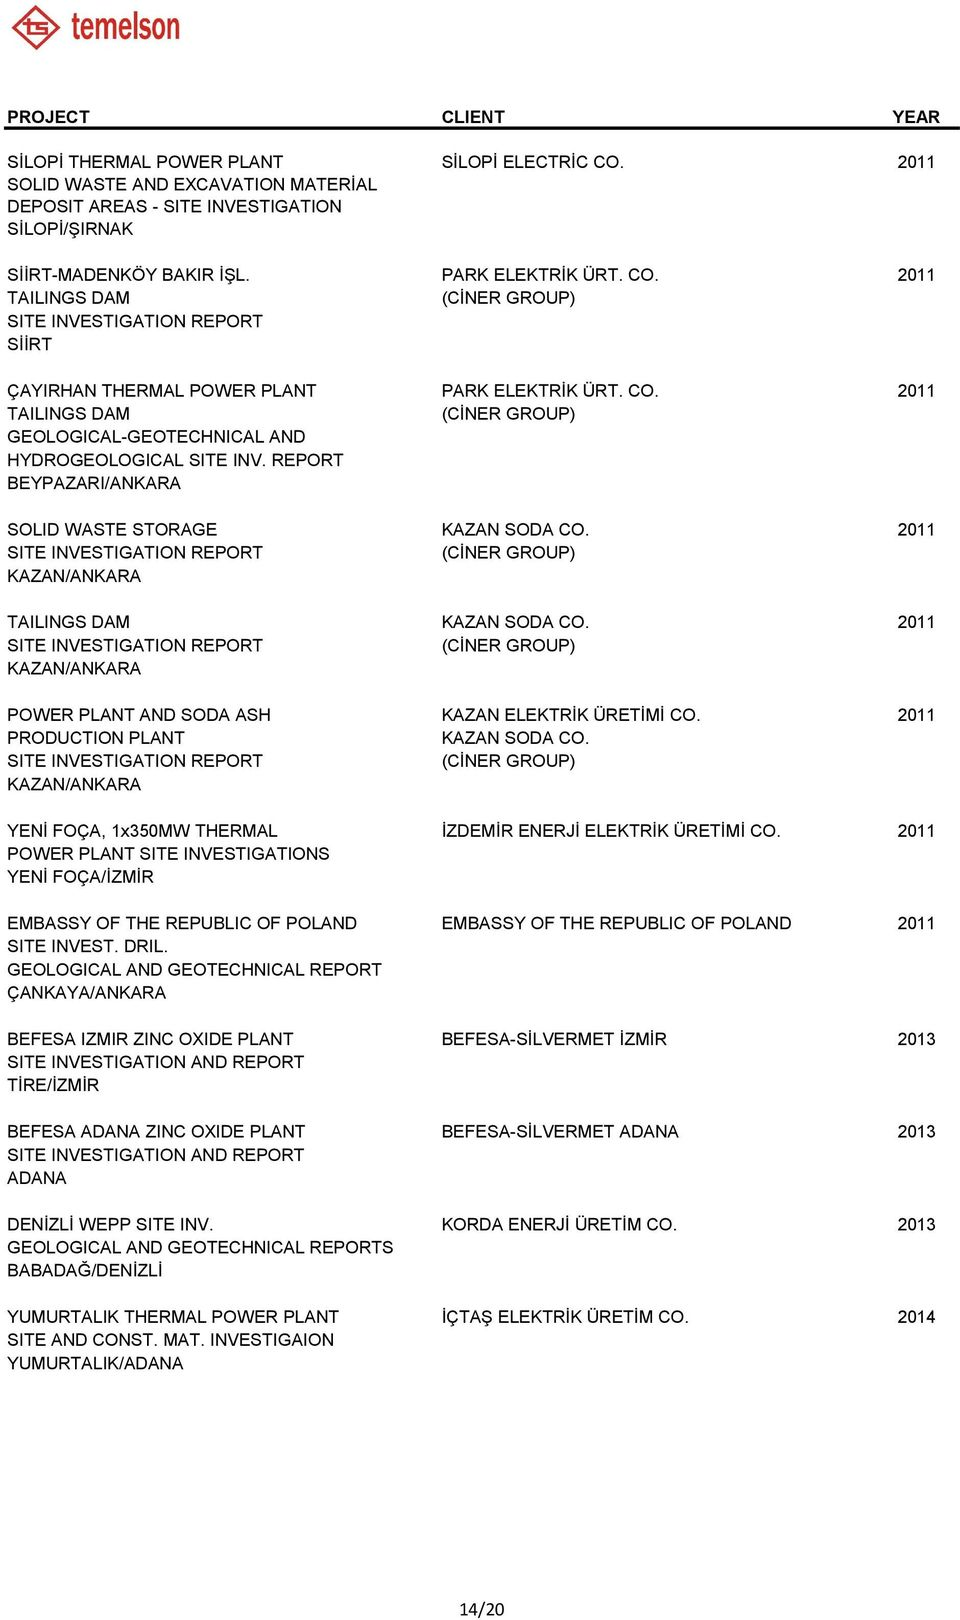 2011 REPORT (CİNER GROUP) KAZAN/ANKARA TAILINGS DAM KAZAN SODA CO. 2011 REPORT (CİNER GROUP) KAZAN/ANKARA POWER PLANT AND SODA ASH KAZAN ELEKTRİK ÜRETİMİ CO. 2011 PRODUCTION PLANT KAZAN SODA CO.